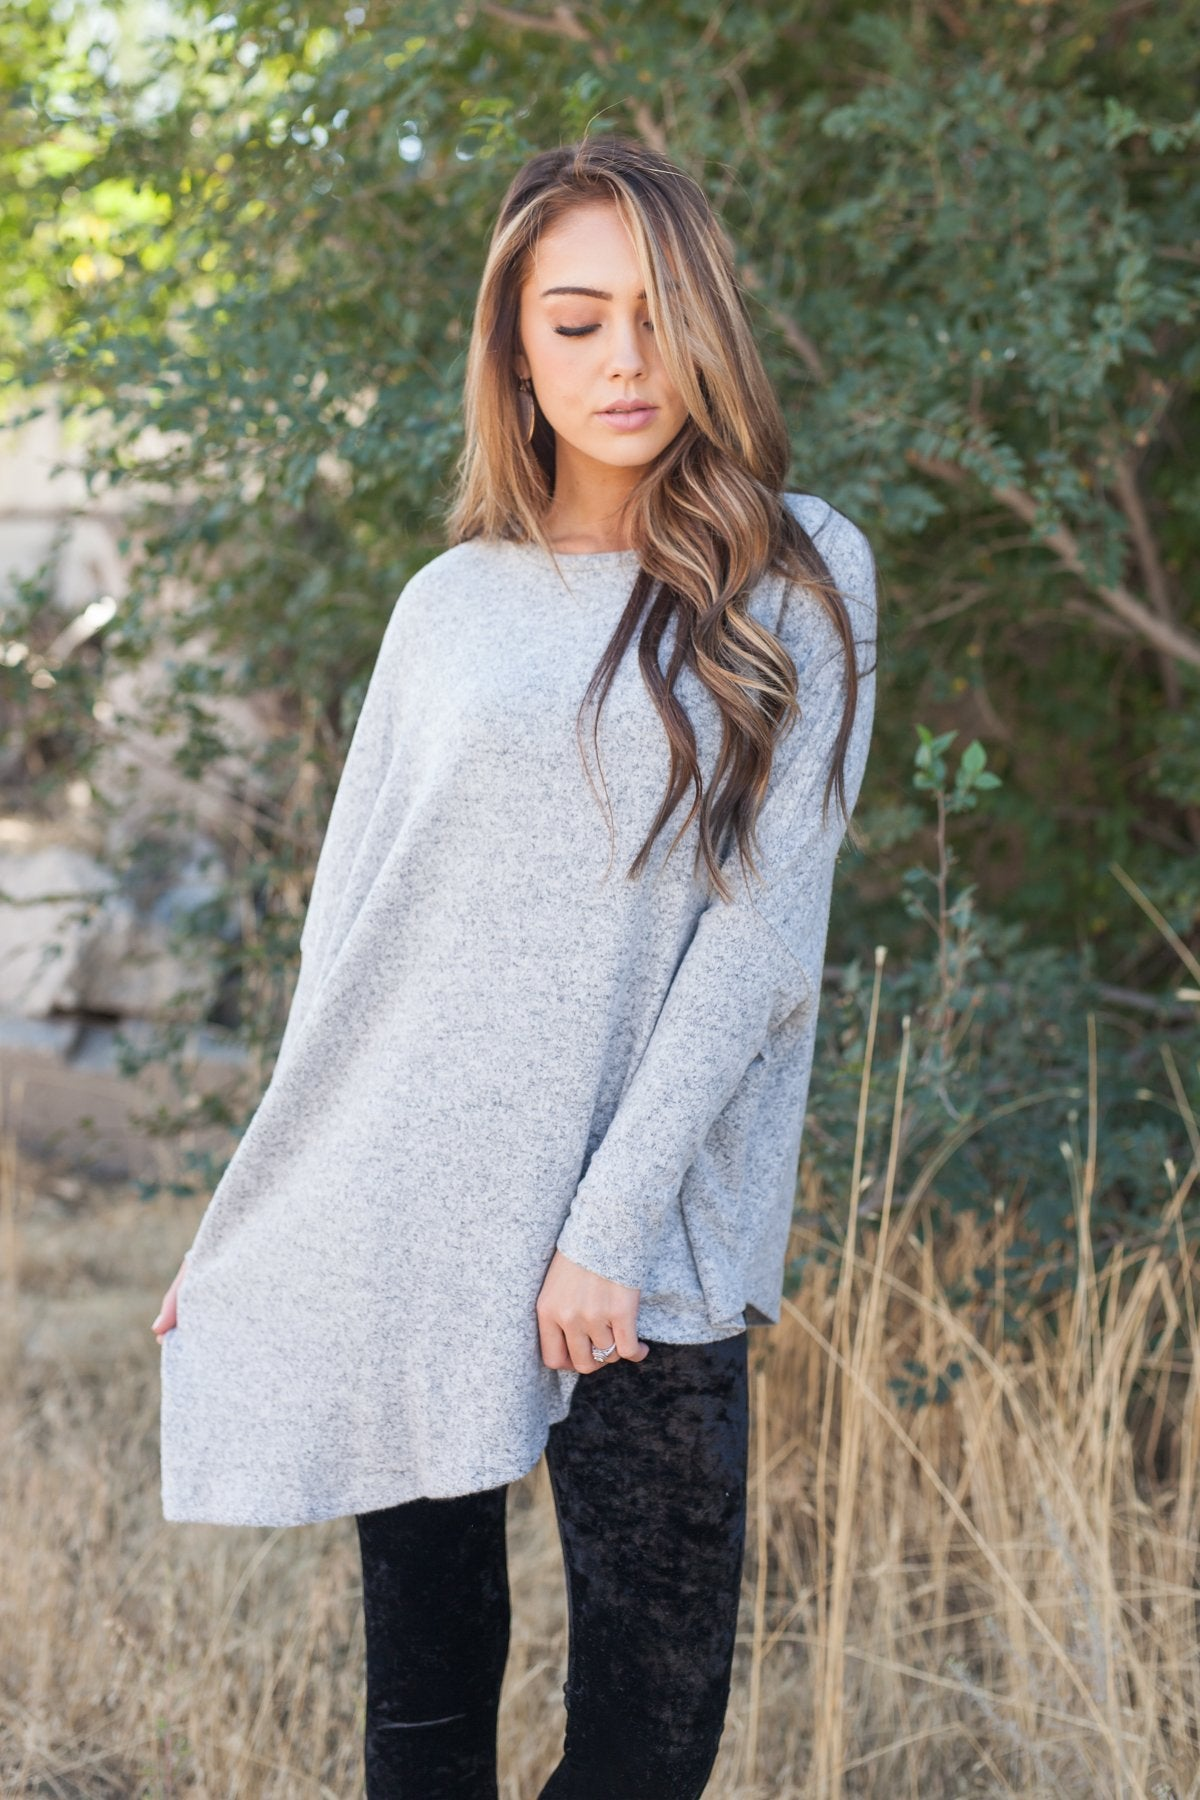 Off Balance On Trend Top In Heather Gray